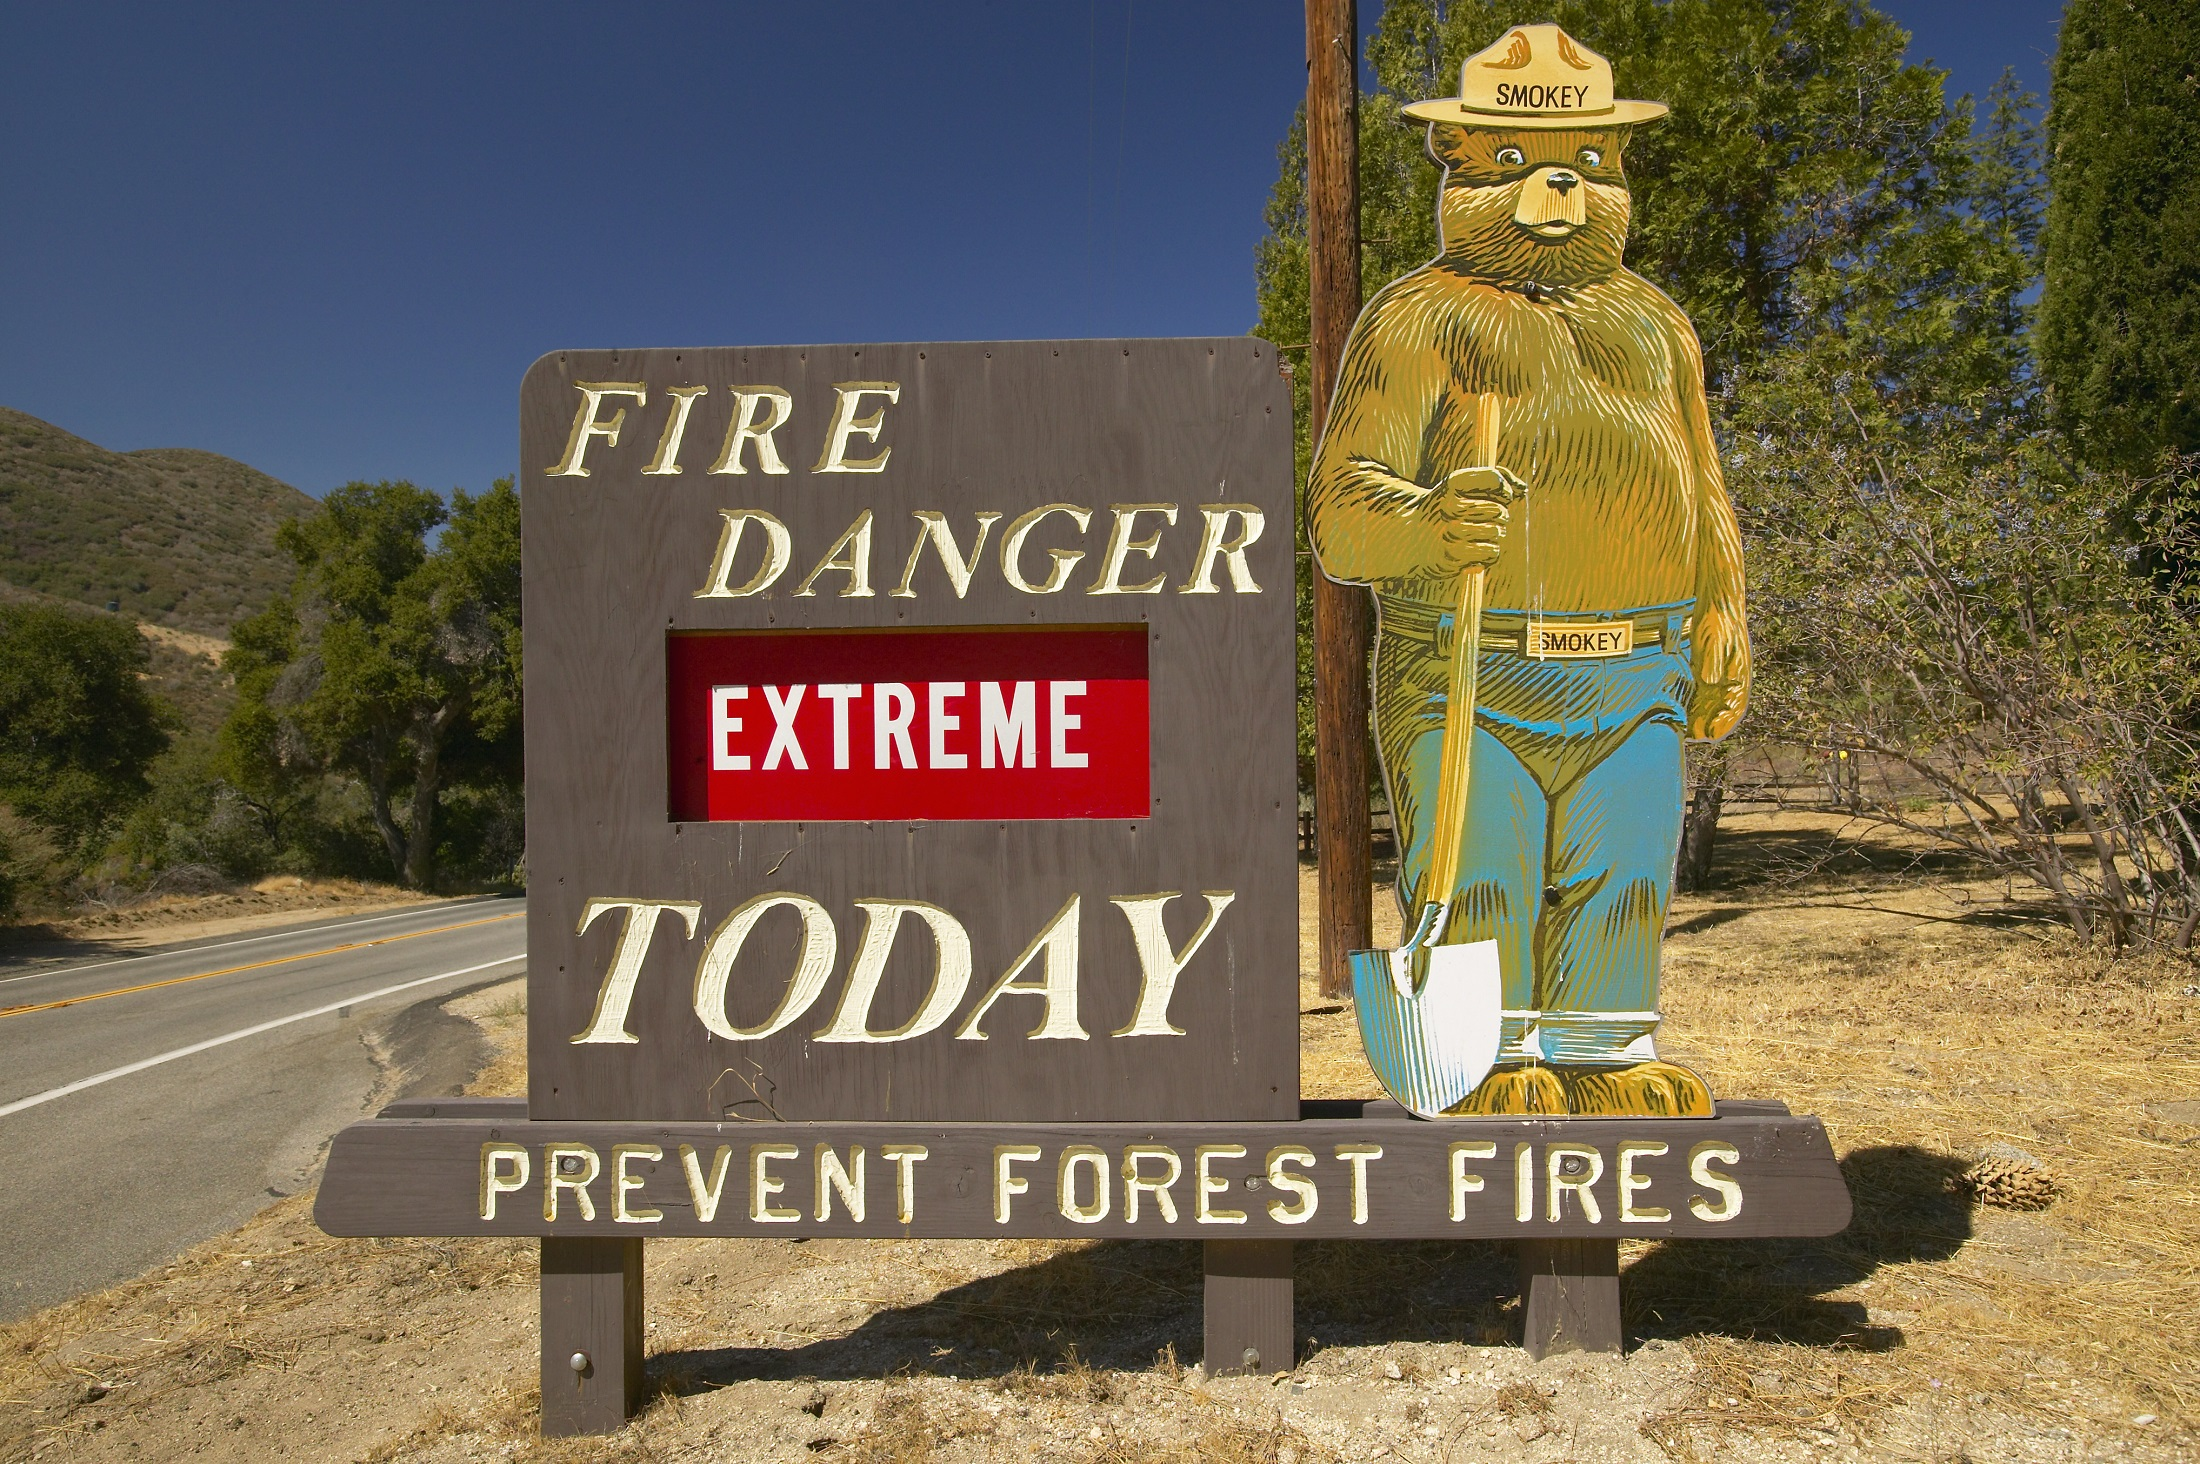 US Forest Service Fire Hazard Sign for Lake Hughes National Forest, California; (photo/Shutterstock)